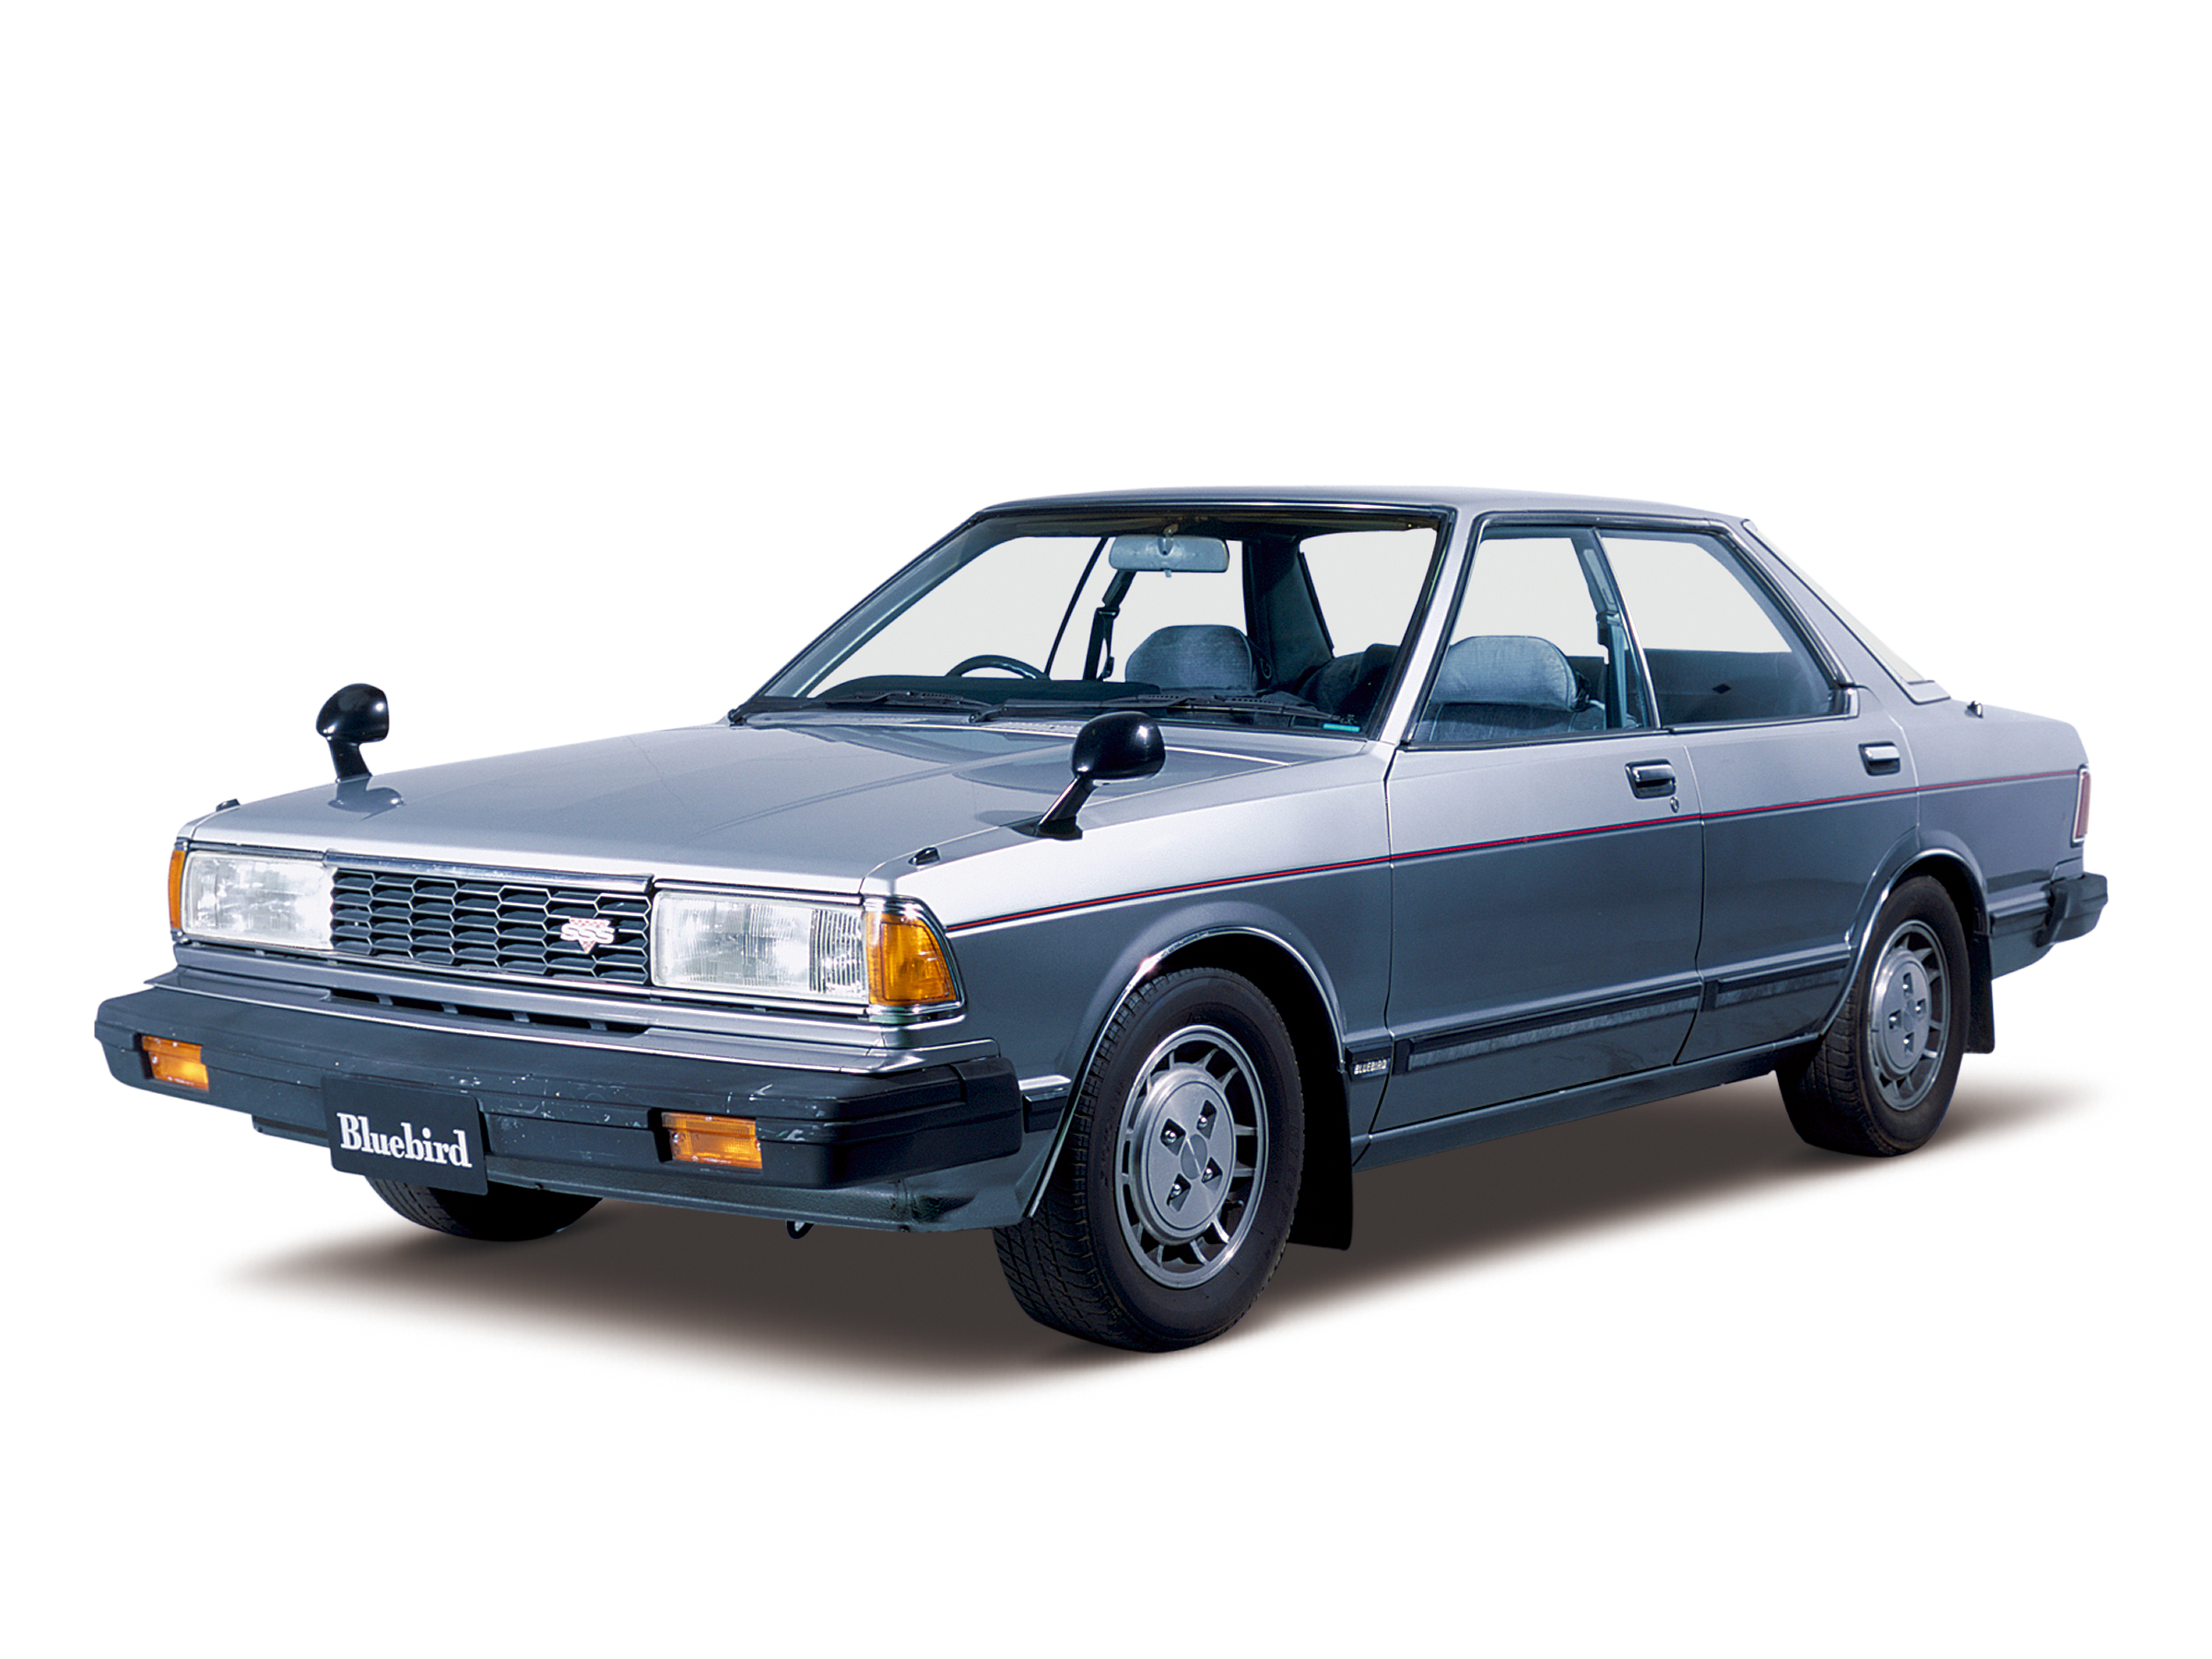 Nissan Heritage Collection Datsun Bluebird 4h T 1800